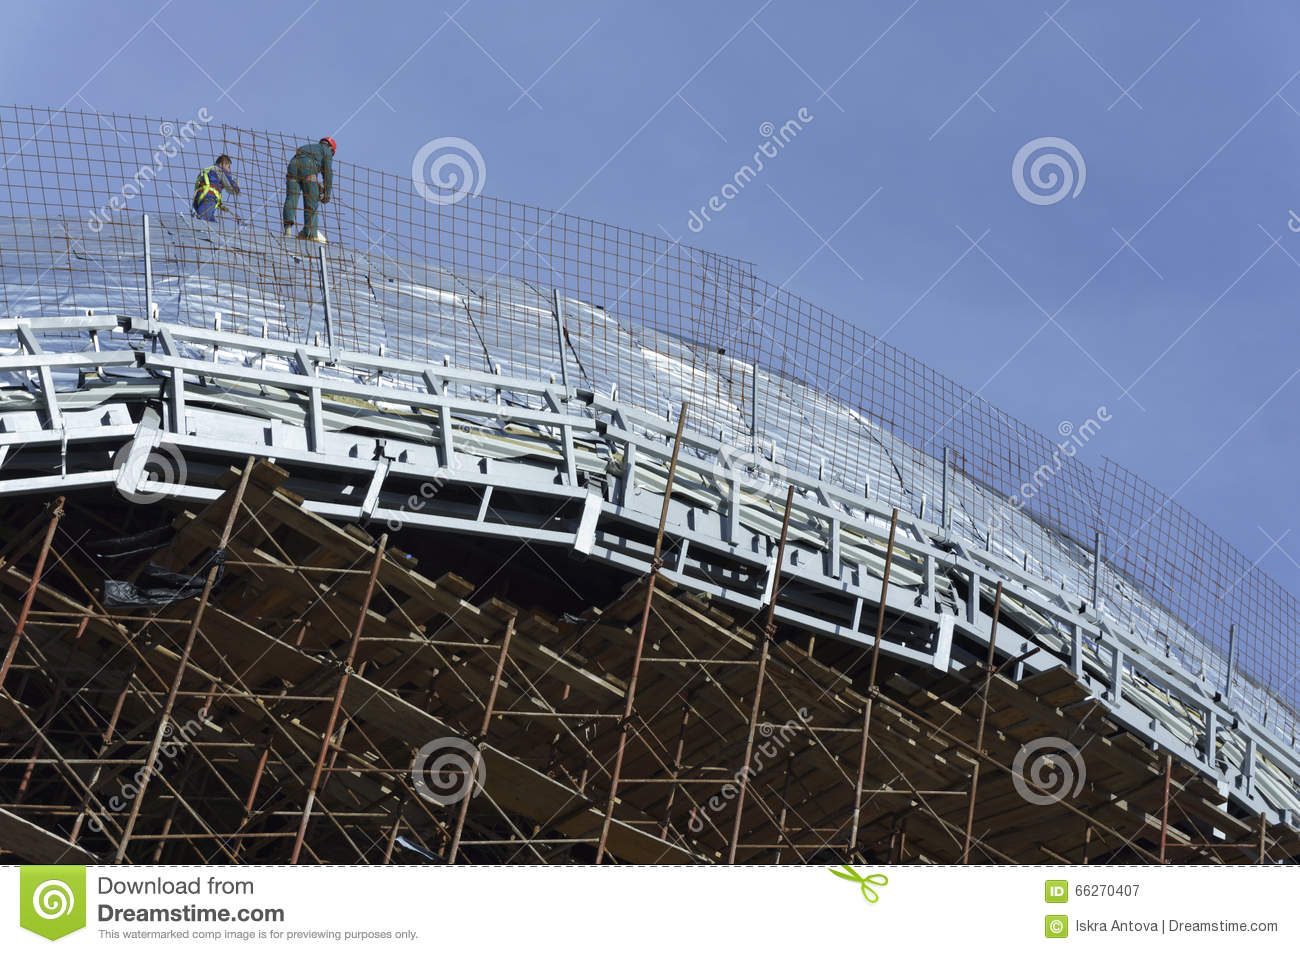 Roofers, tied with ropes working on the roof 4